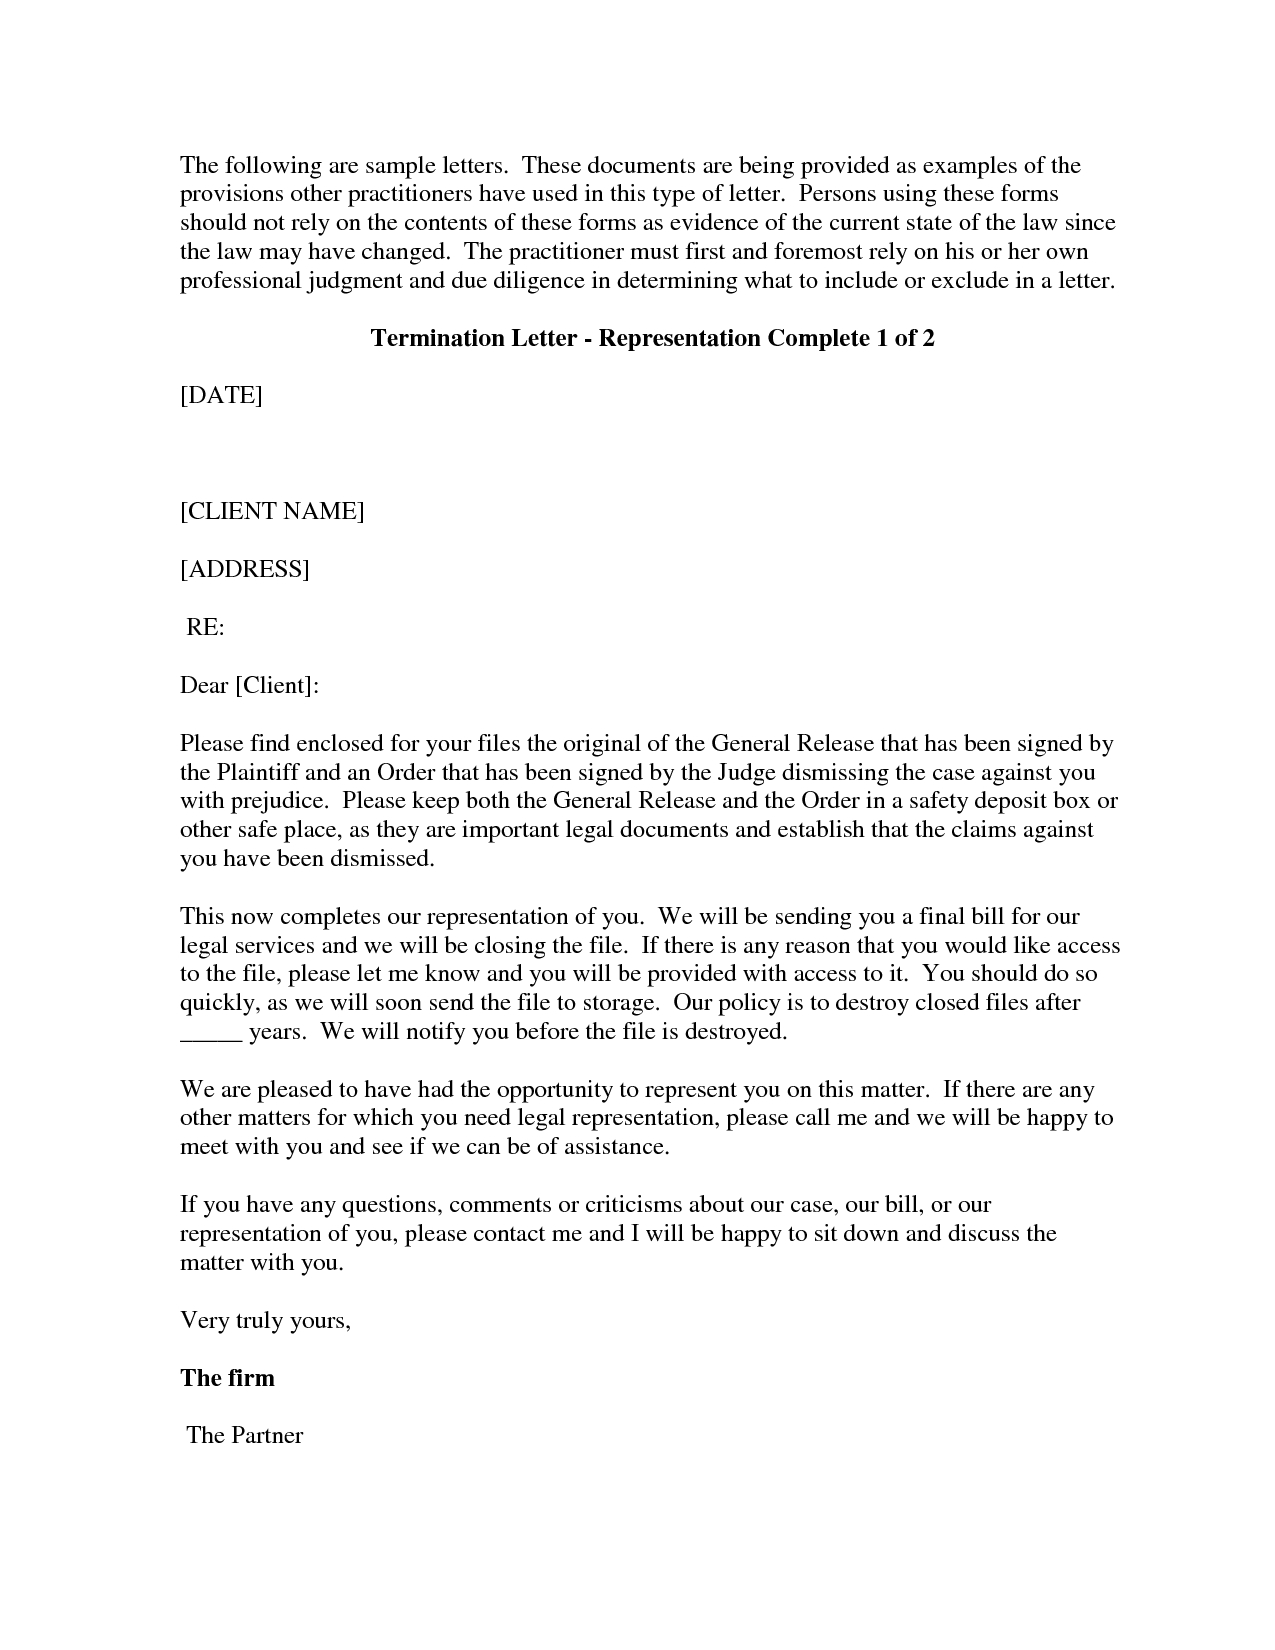 Client Termination Letter Template - Free Cover Letter Templates Sample attorney Termination Letter